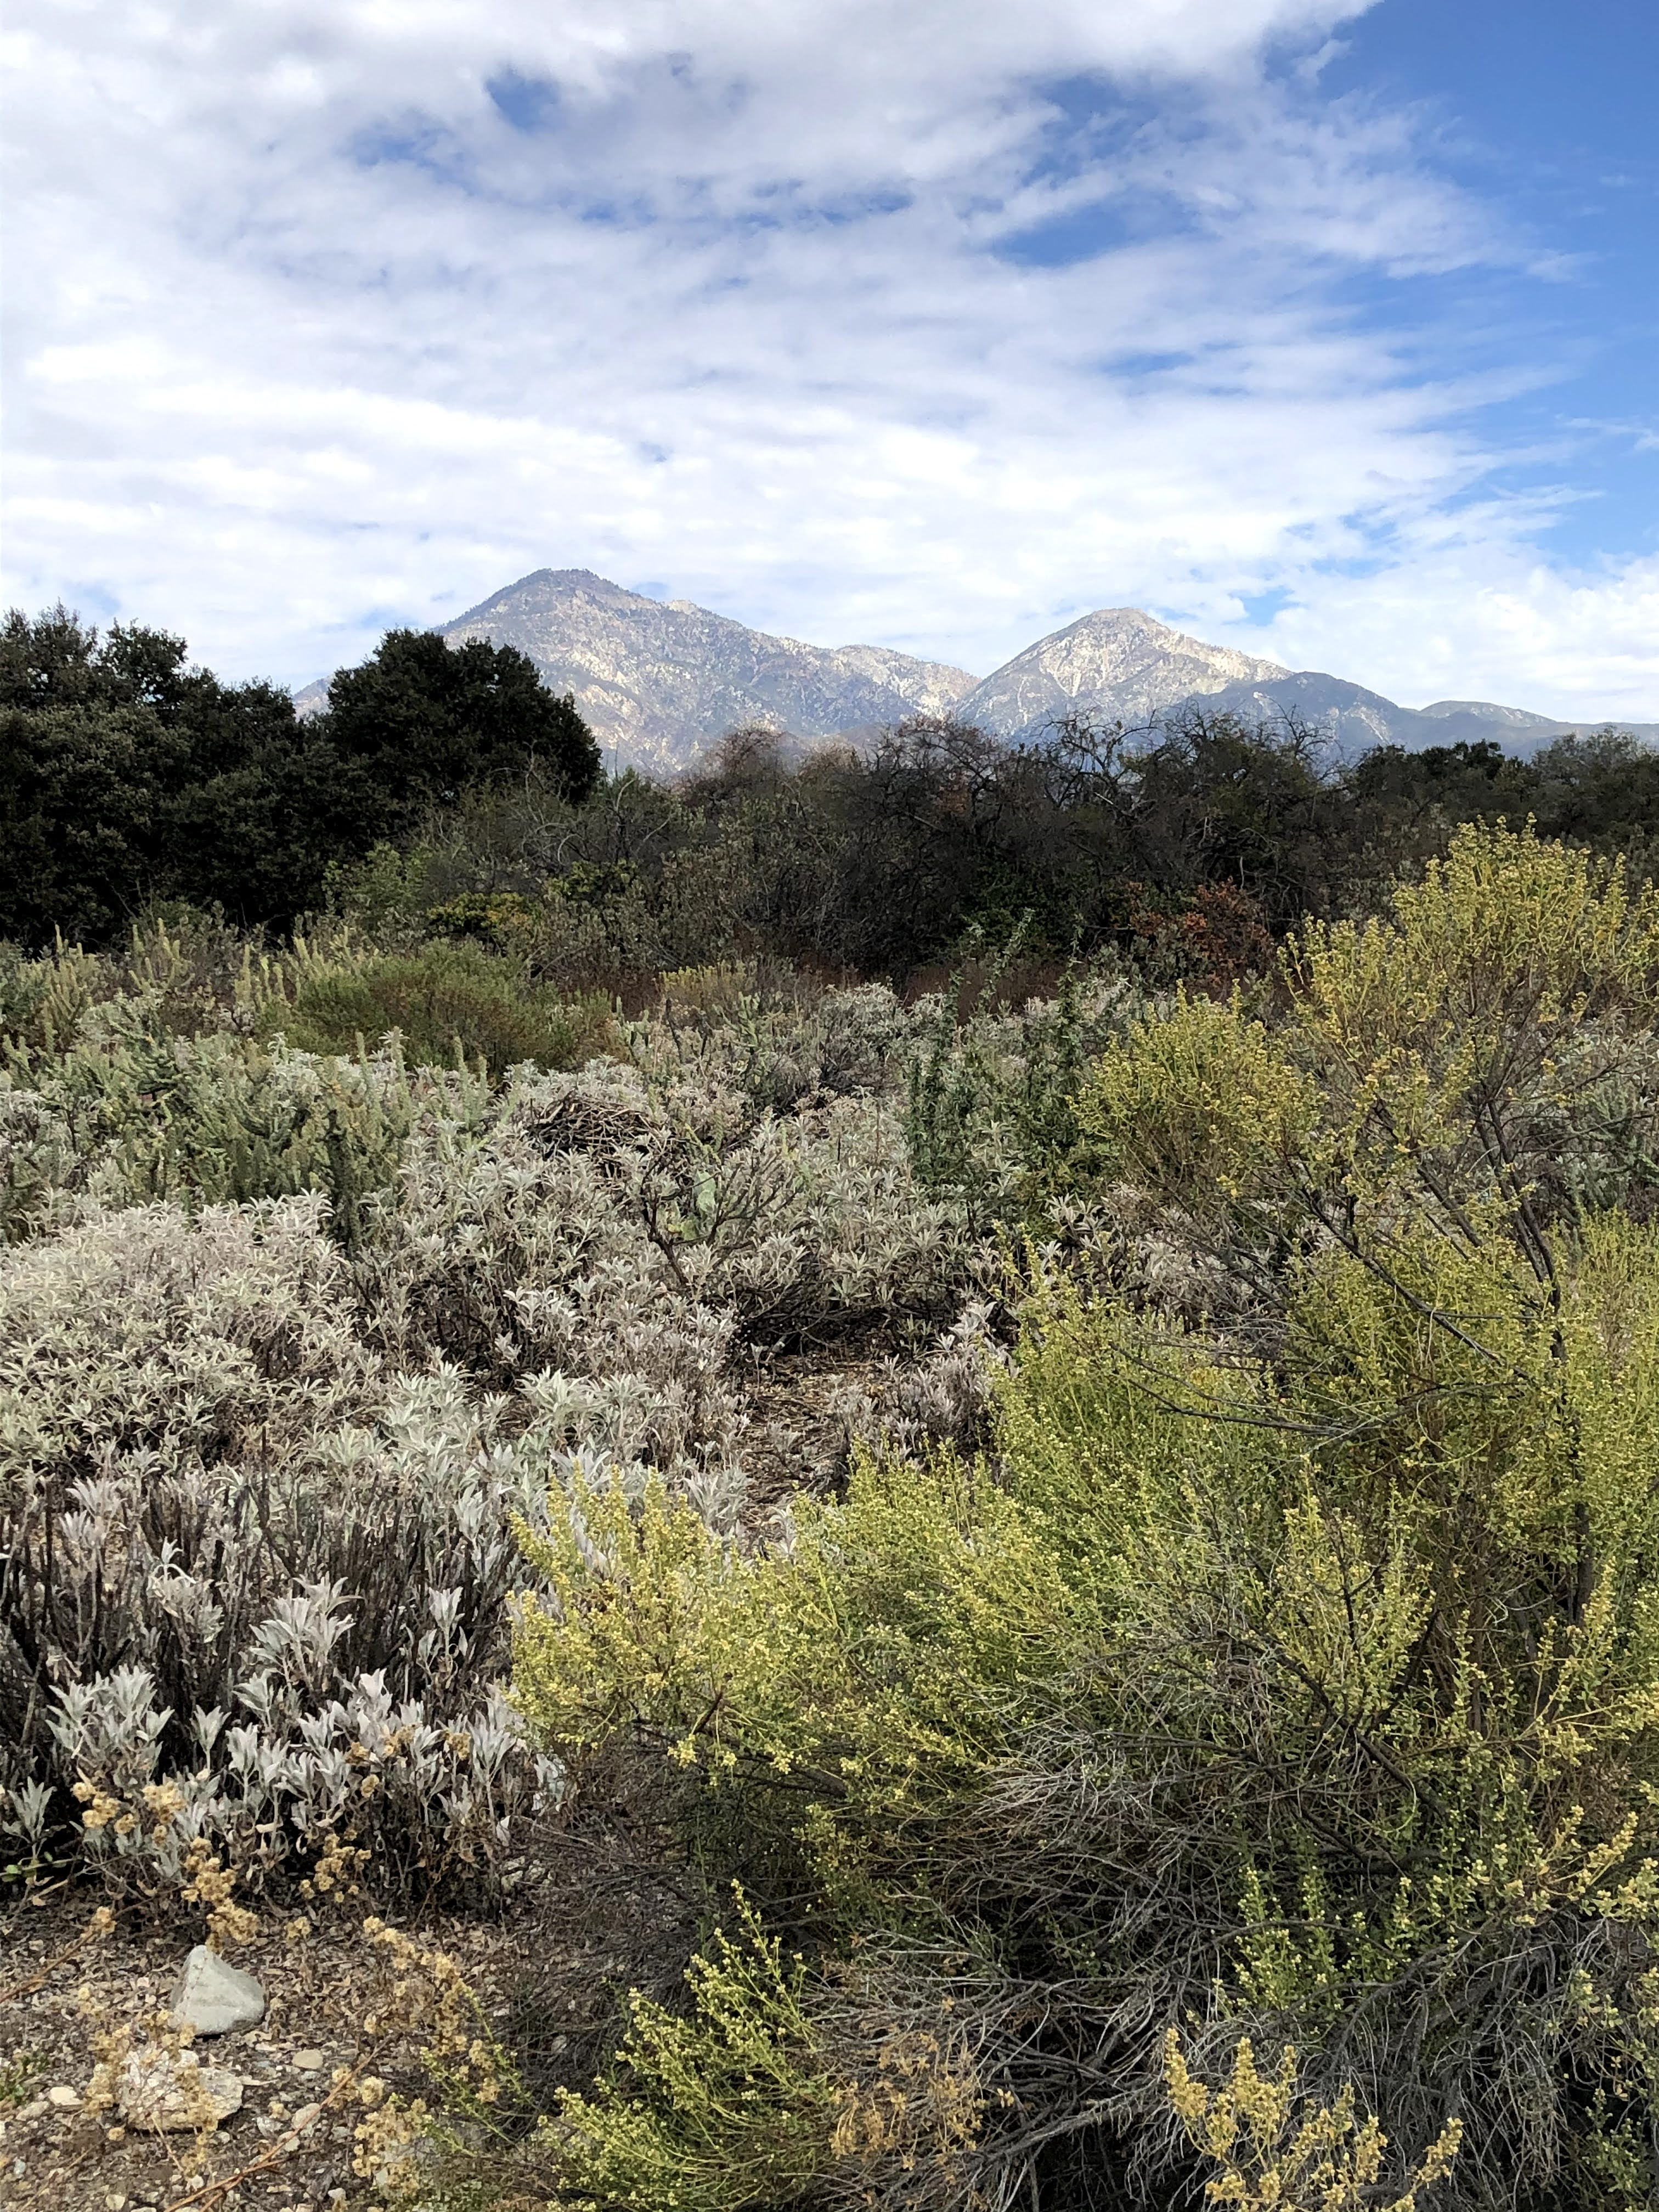 California Botanical Garden with San Gabriel Mountains in the background.